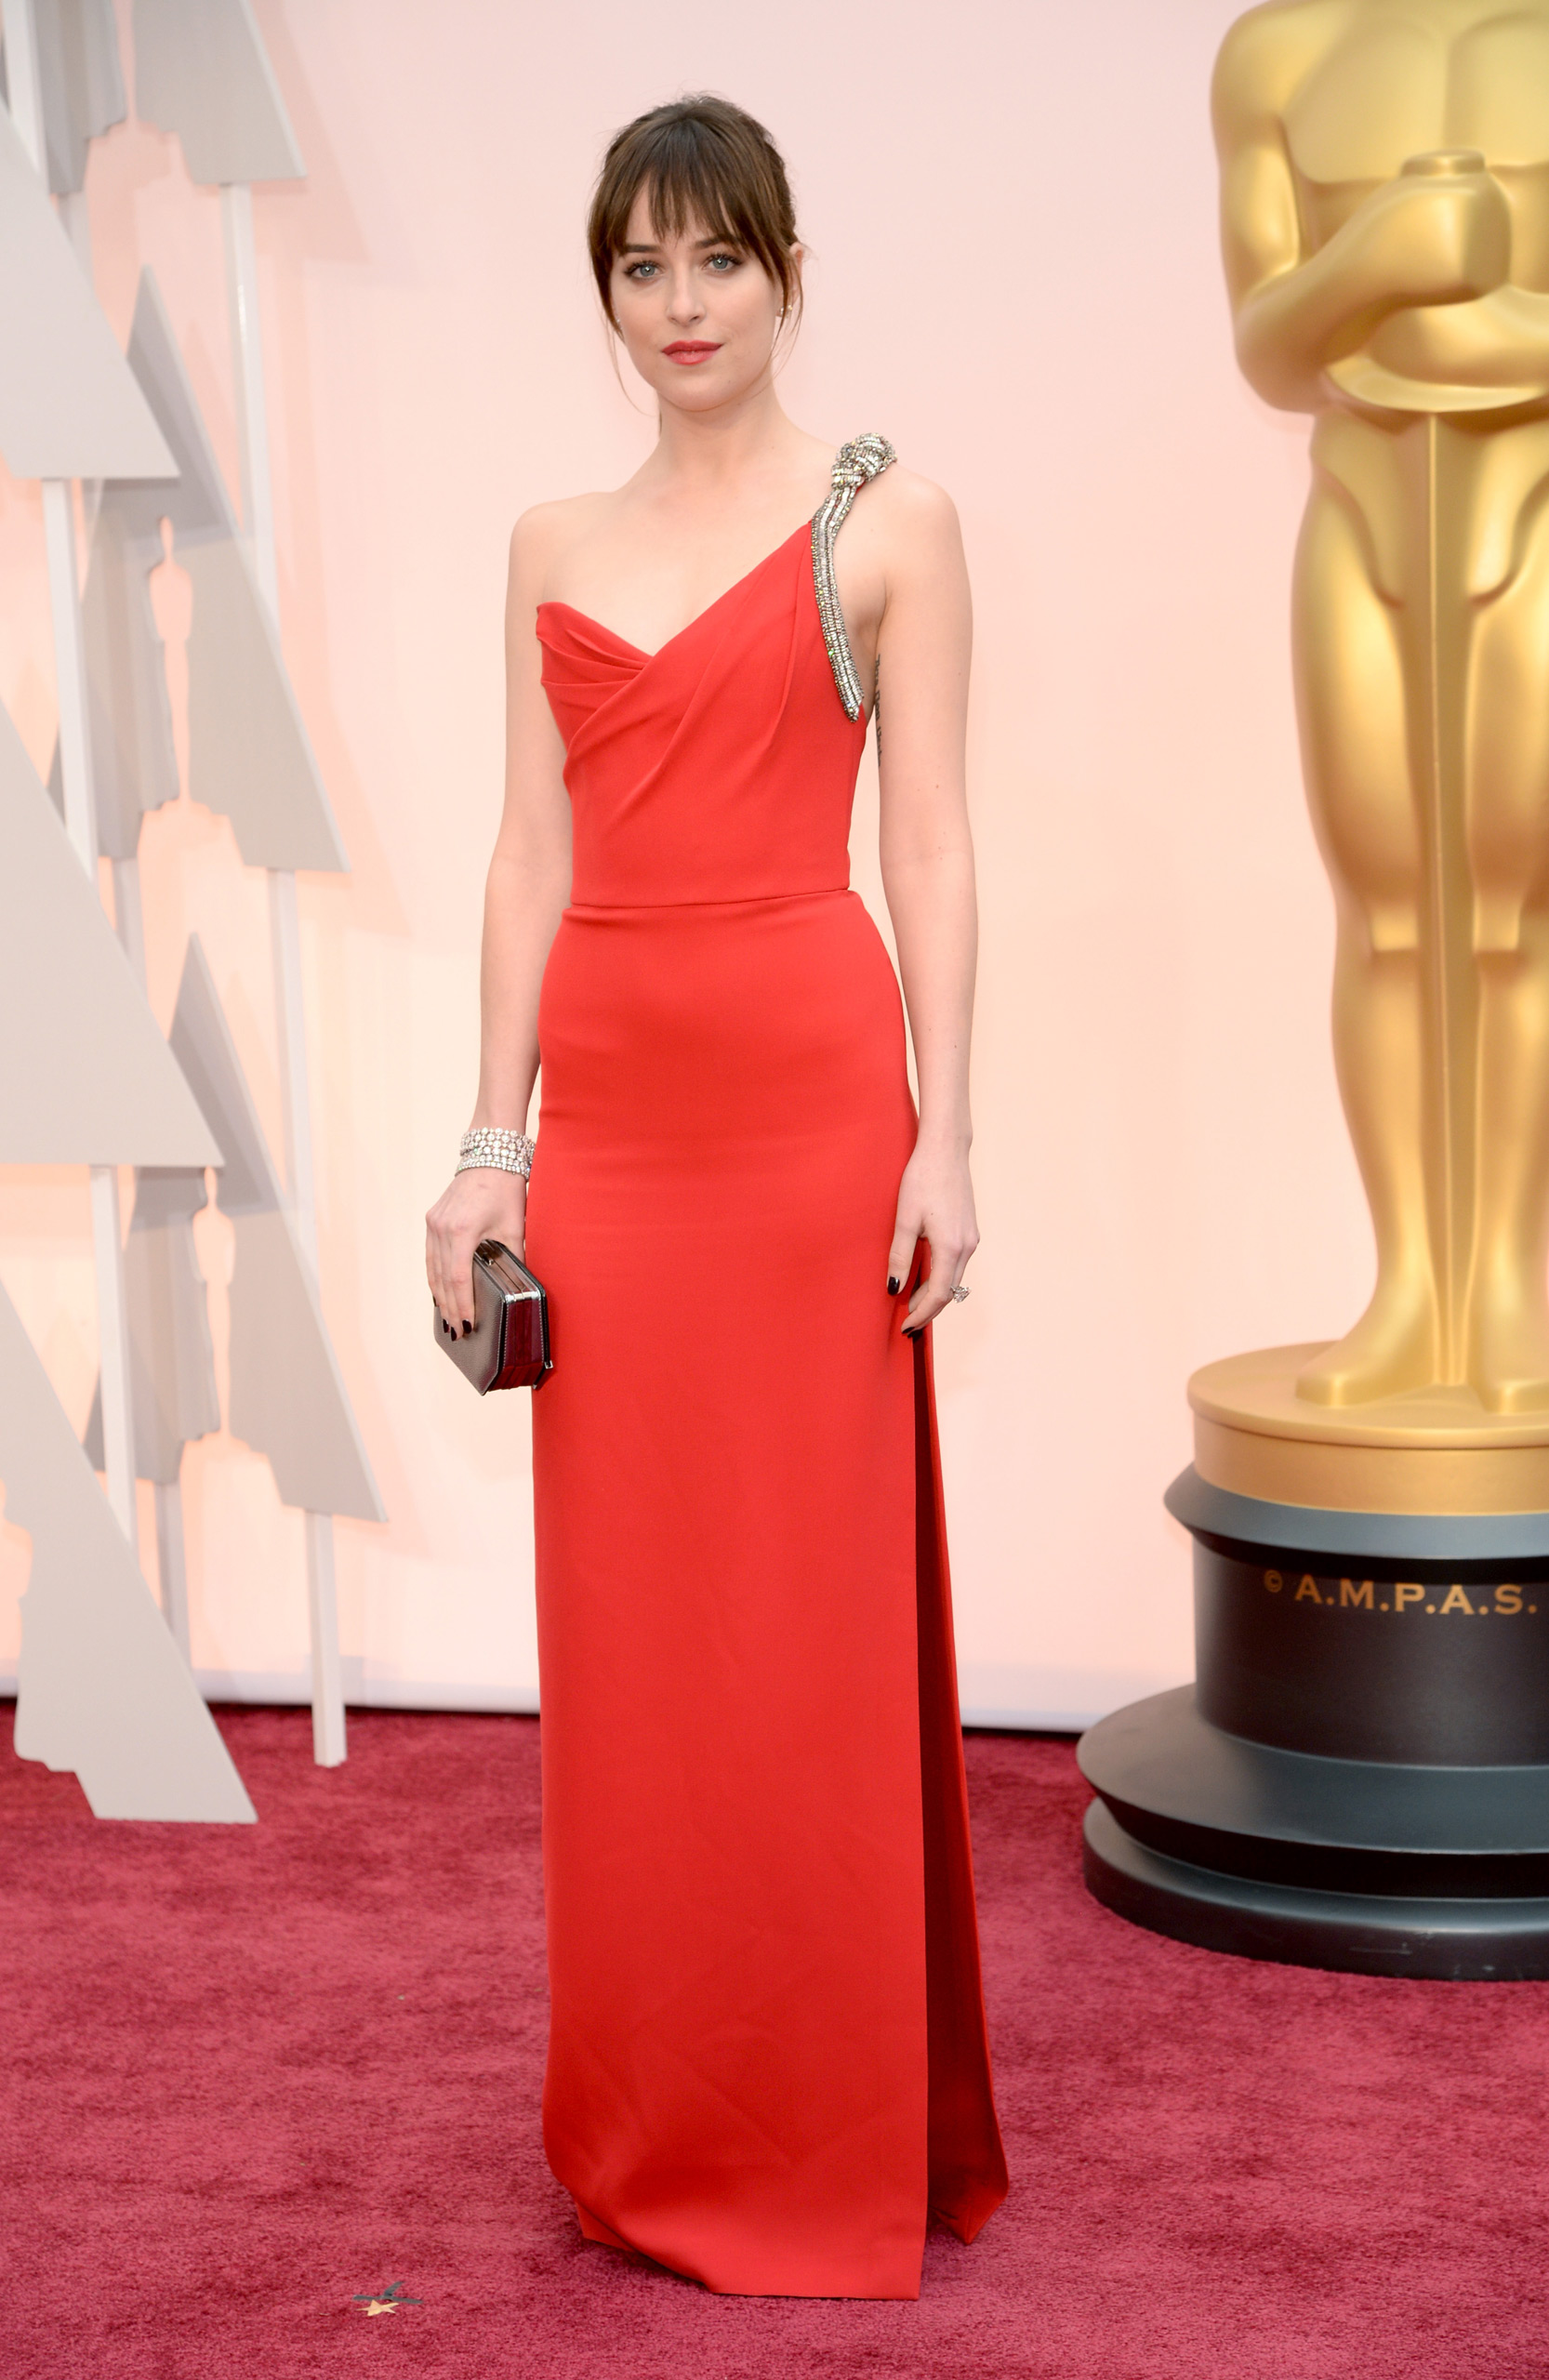 Dakota Johnson attends the 87th Annual Academy Awards on Feb. 22, 2015 in Hollywood, Calif.